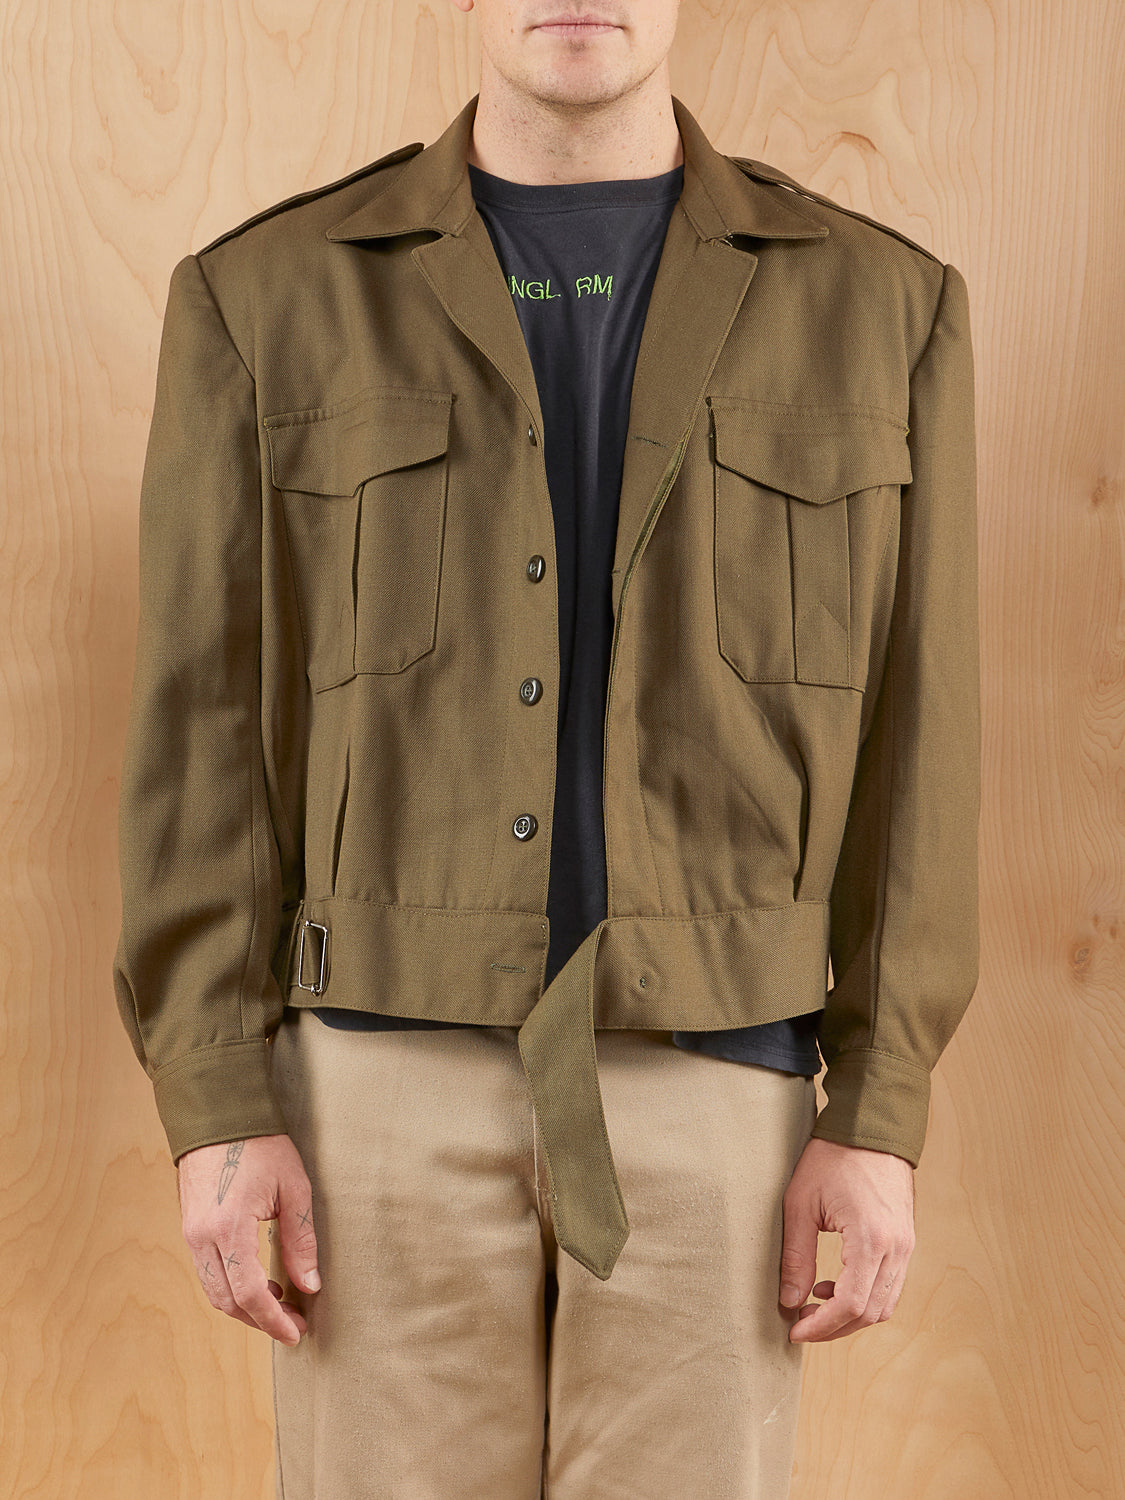 Military Style Jacket with Shoulder Pads